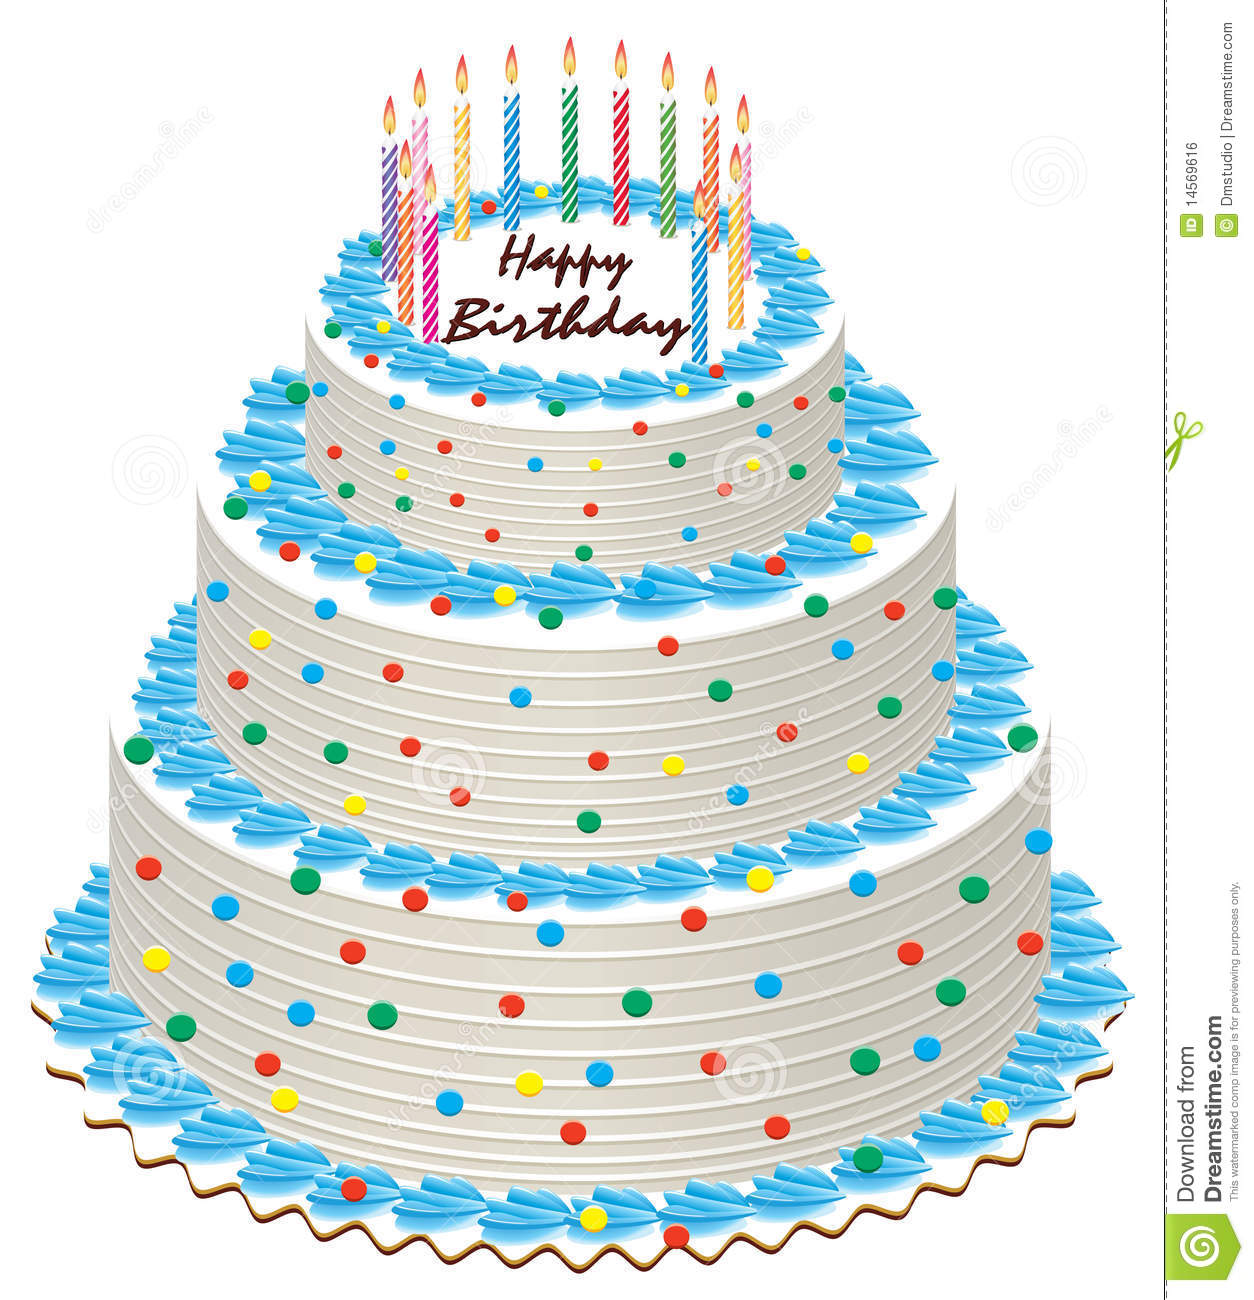 Birthday cake stock vector Illustration of color